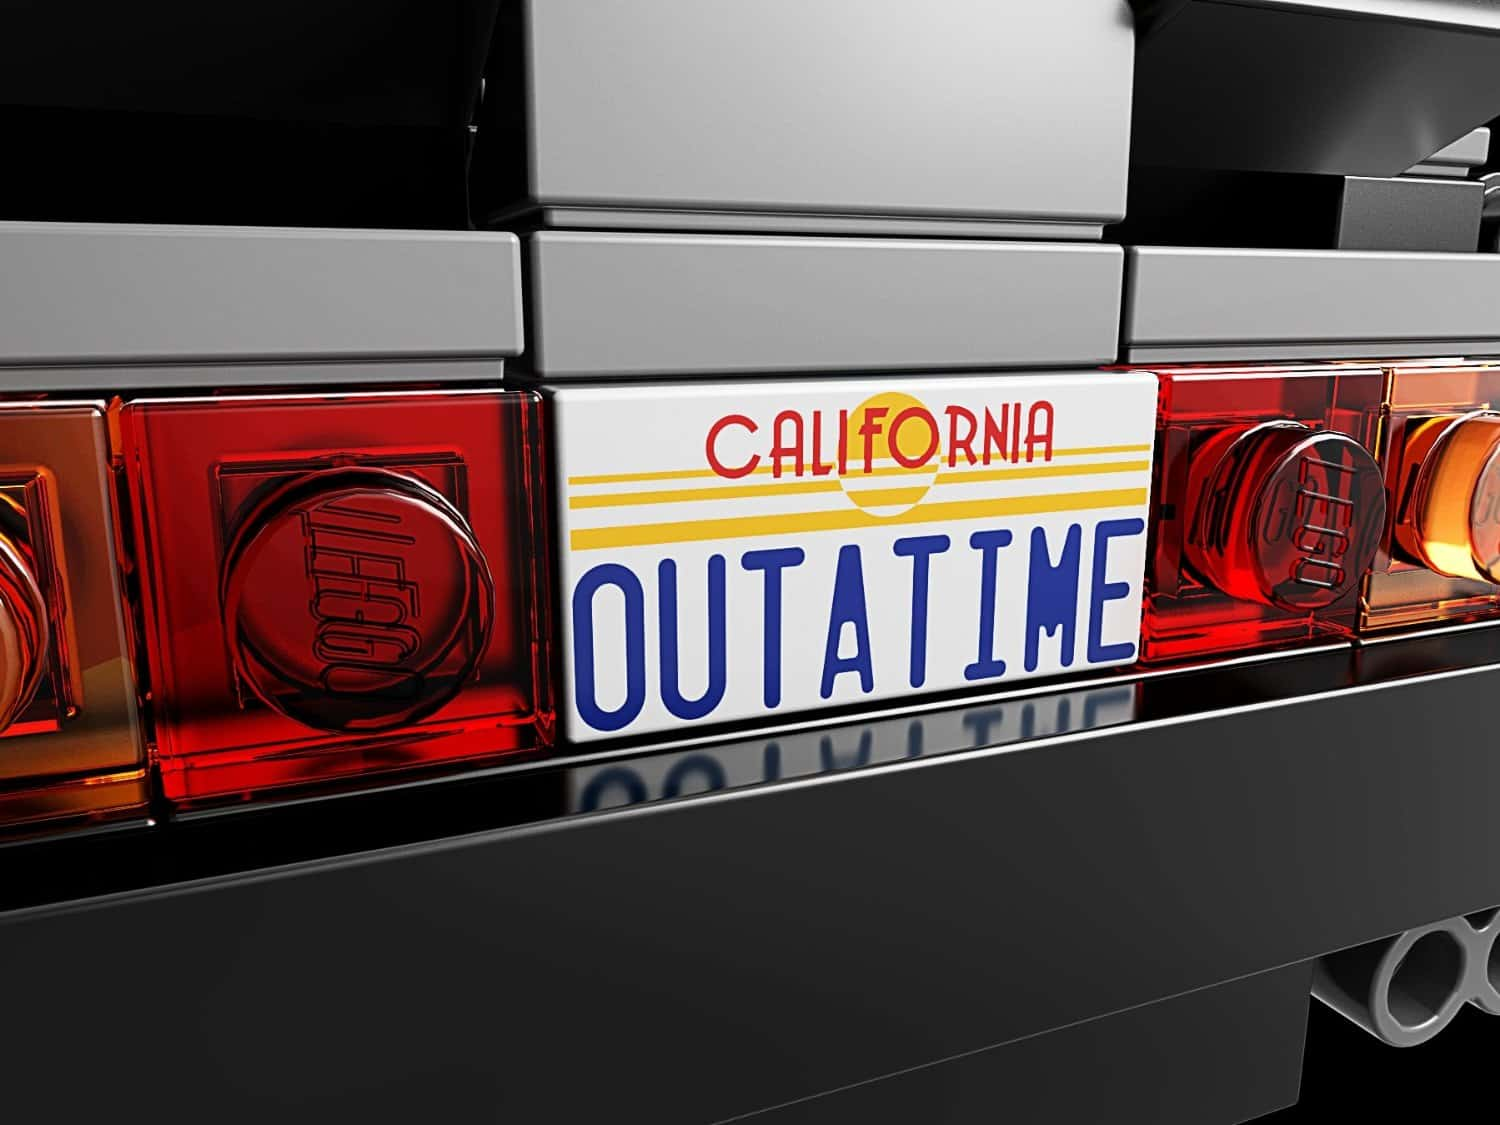 Lego The DeLorean Time Machine Set Out A Time License Plate